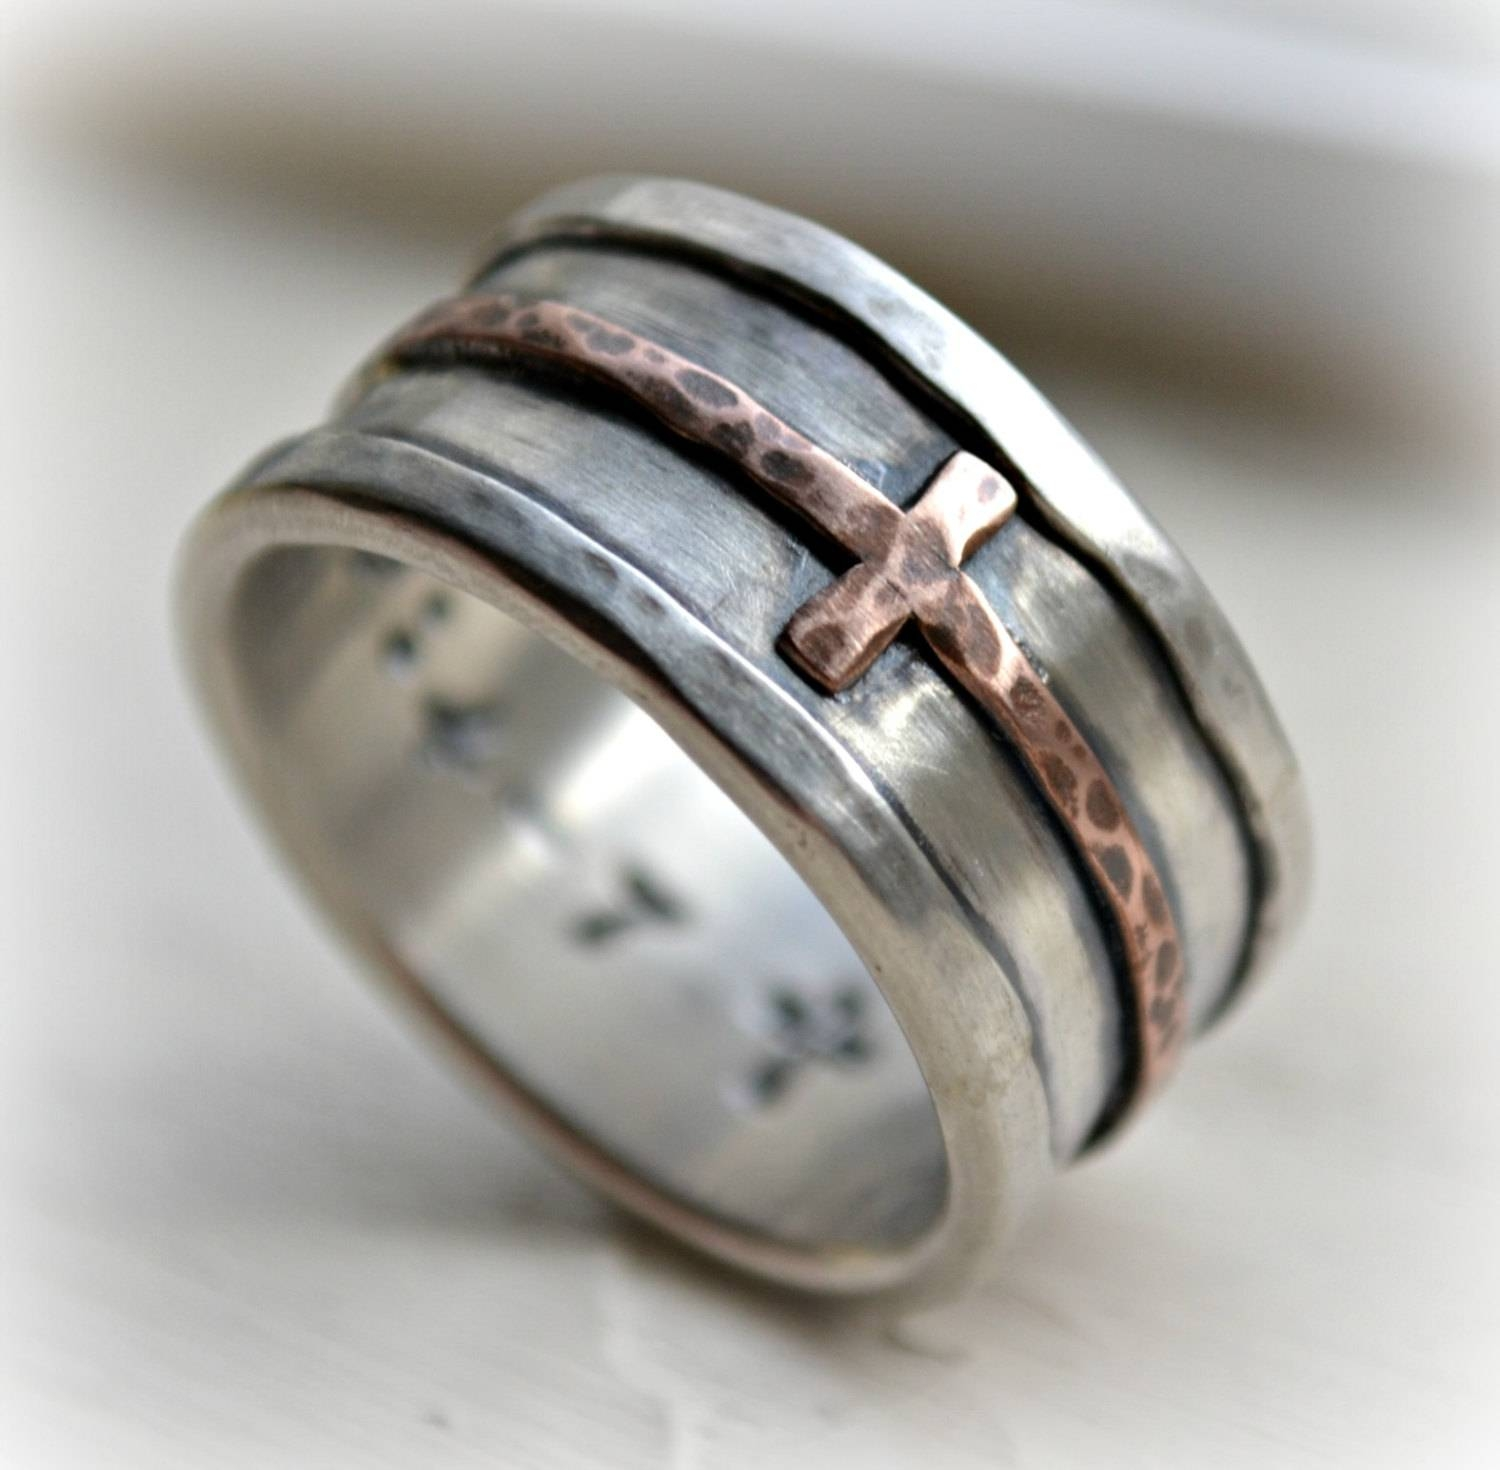 Mens Cross Wedding Band Rustic Hammered Cross Ring Oxidized Intended For Handmade Men's Wedding Bands (View 6 of 15)